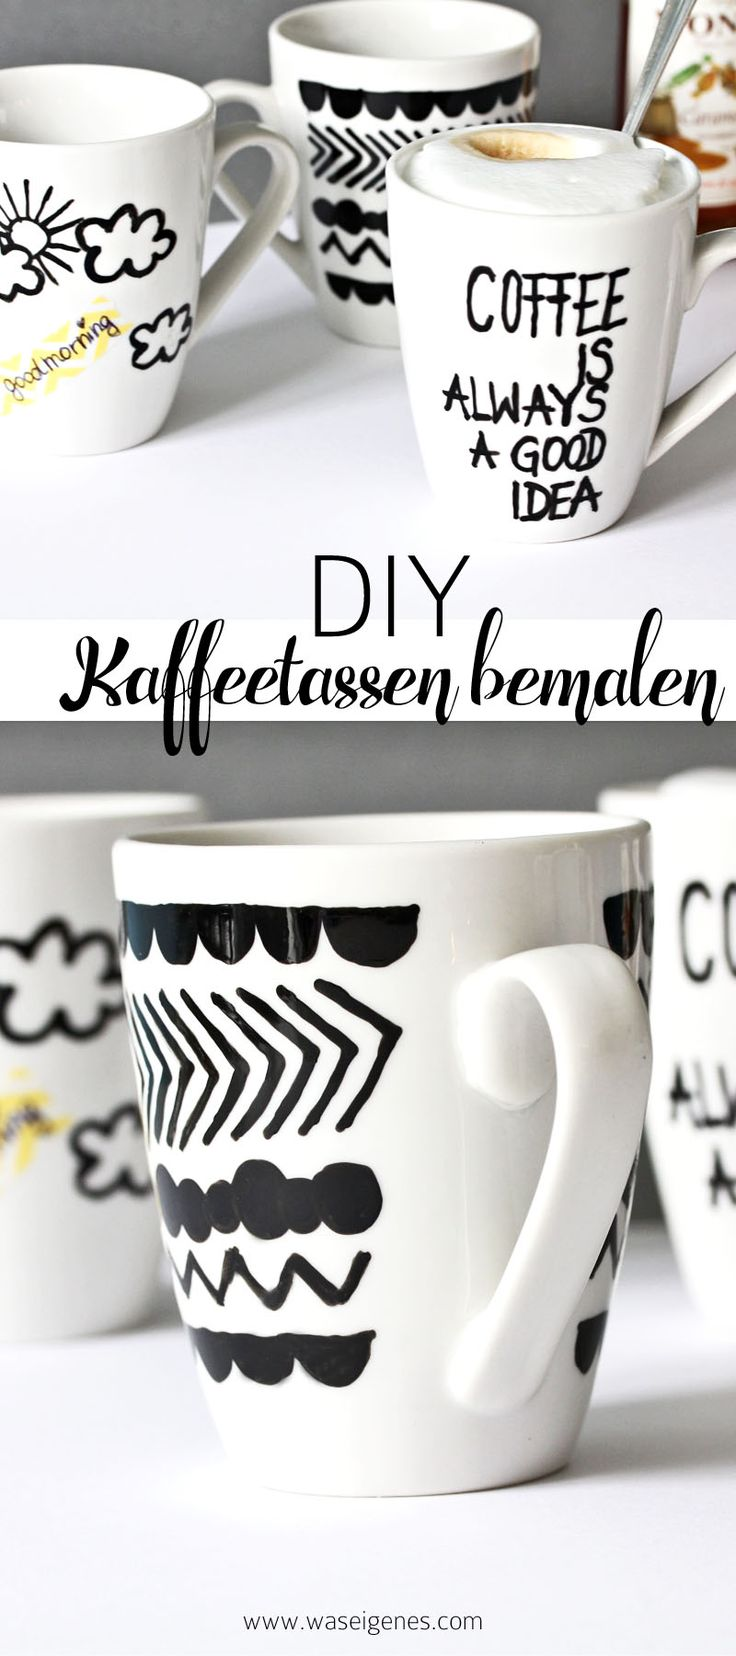 DIY Kaffeetassen bemalen und beschriften | good morning & coffee is always a good idea!